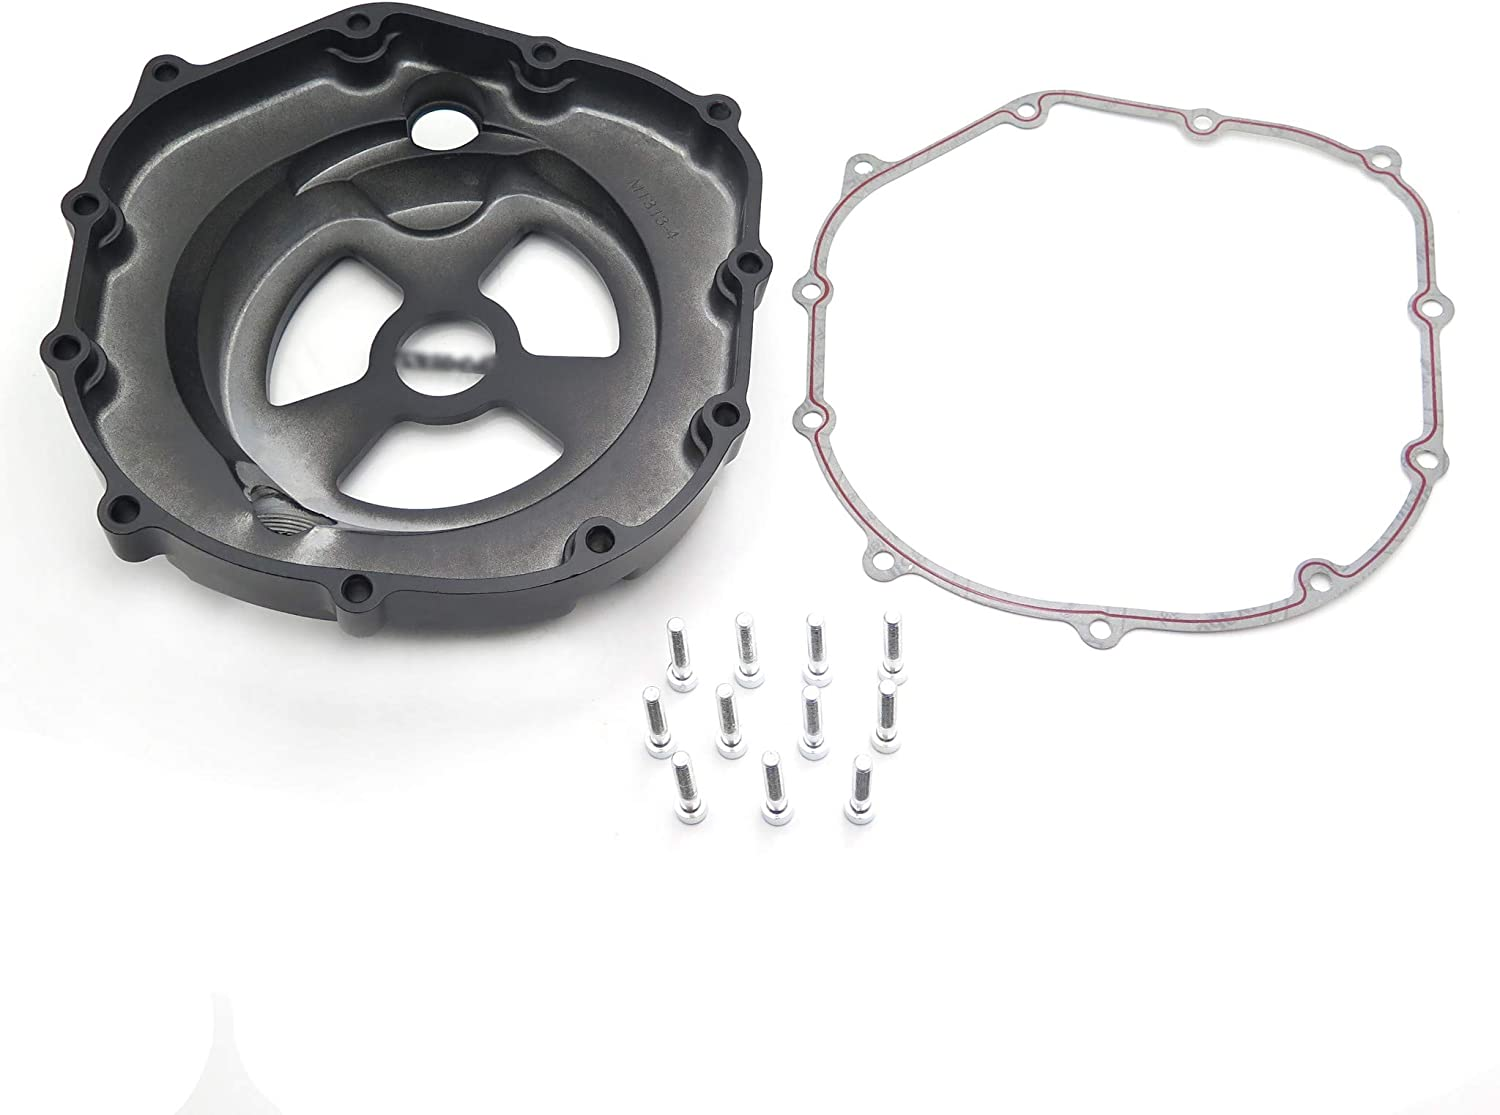 Black Right Engine Clutch Cover See Through Kawasaki Zx14R Zzr1400 2006-2014 w// gasket HTT